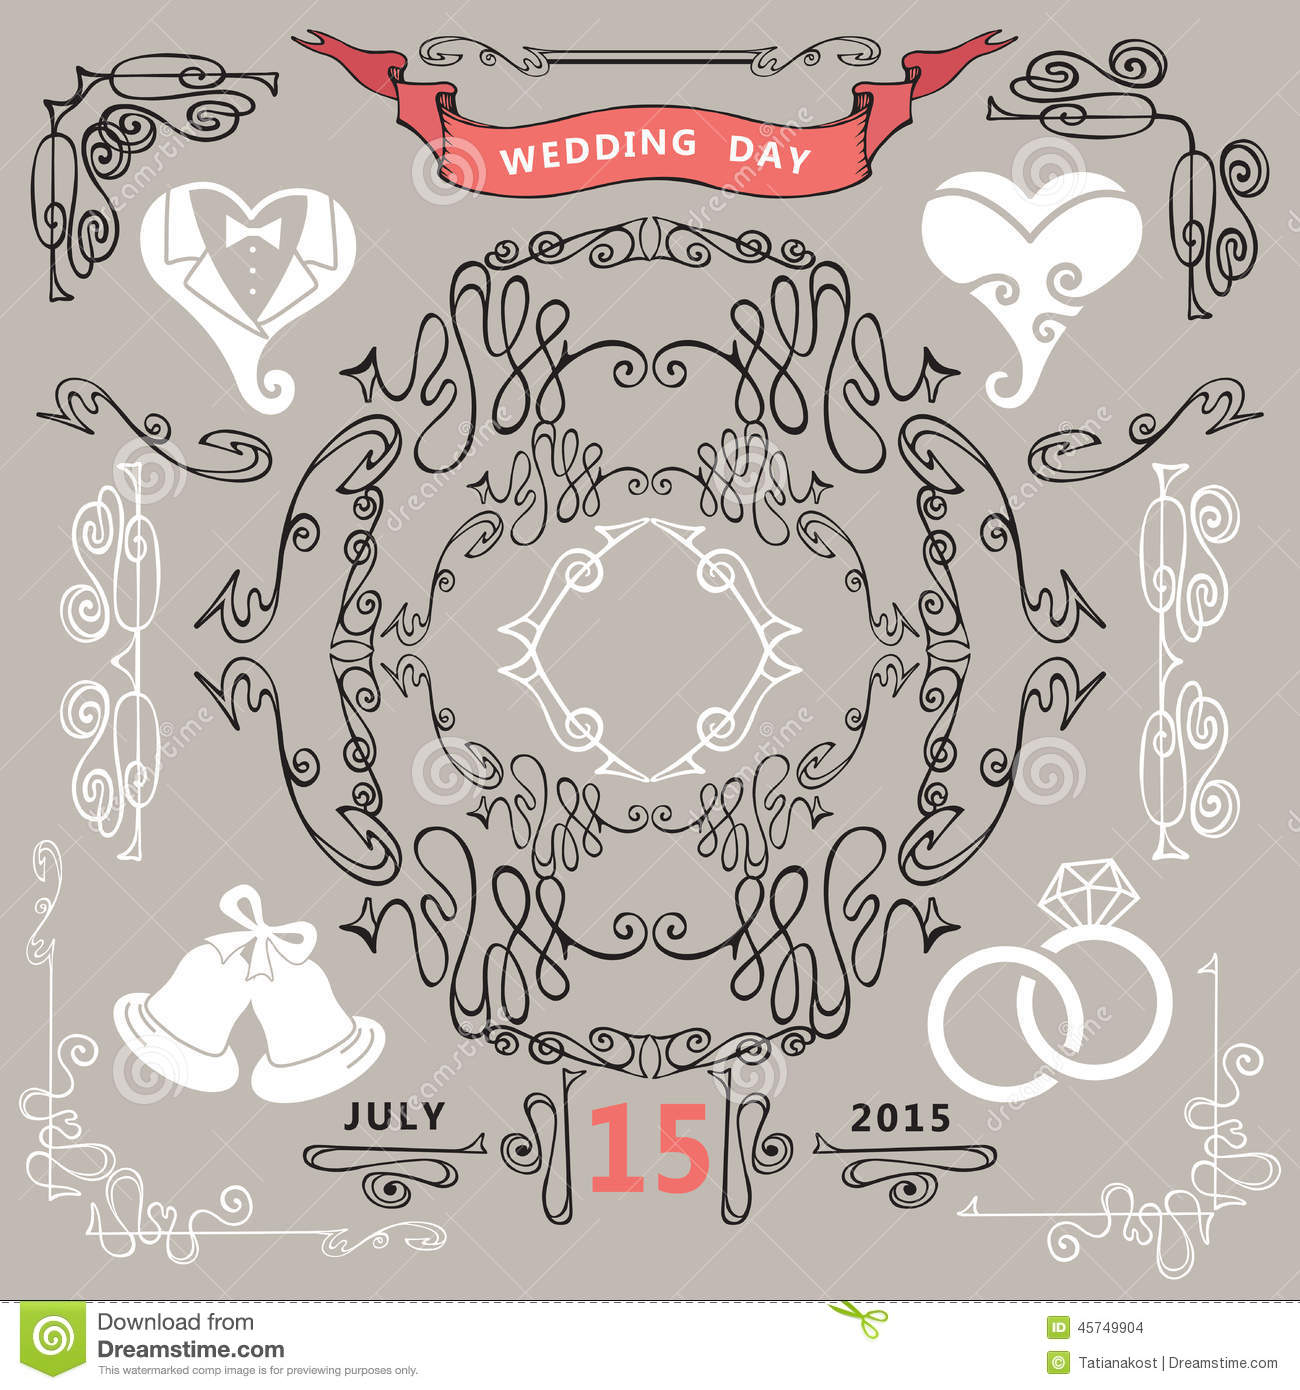 ... wedding icons.For Wedding invitation,postcard,save the date card